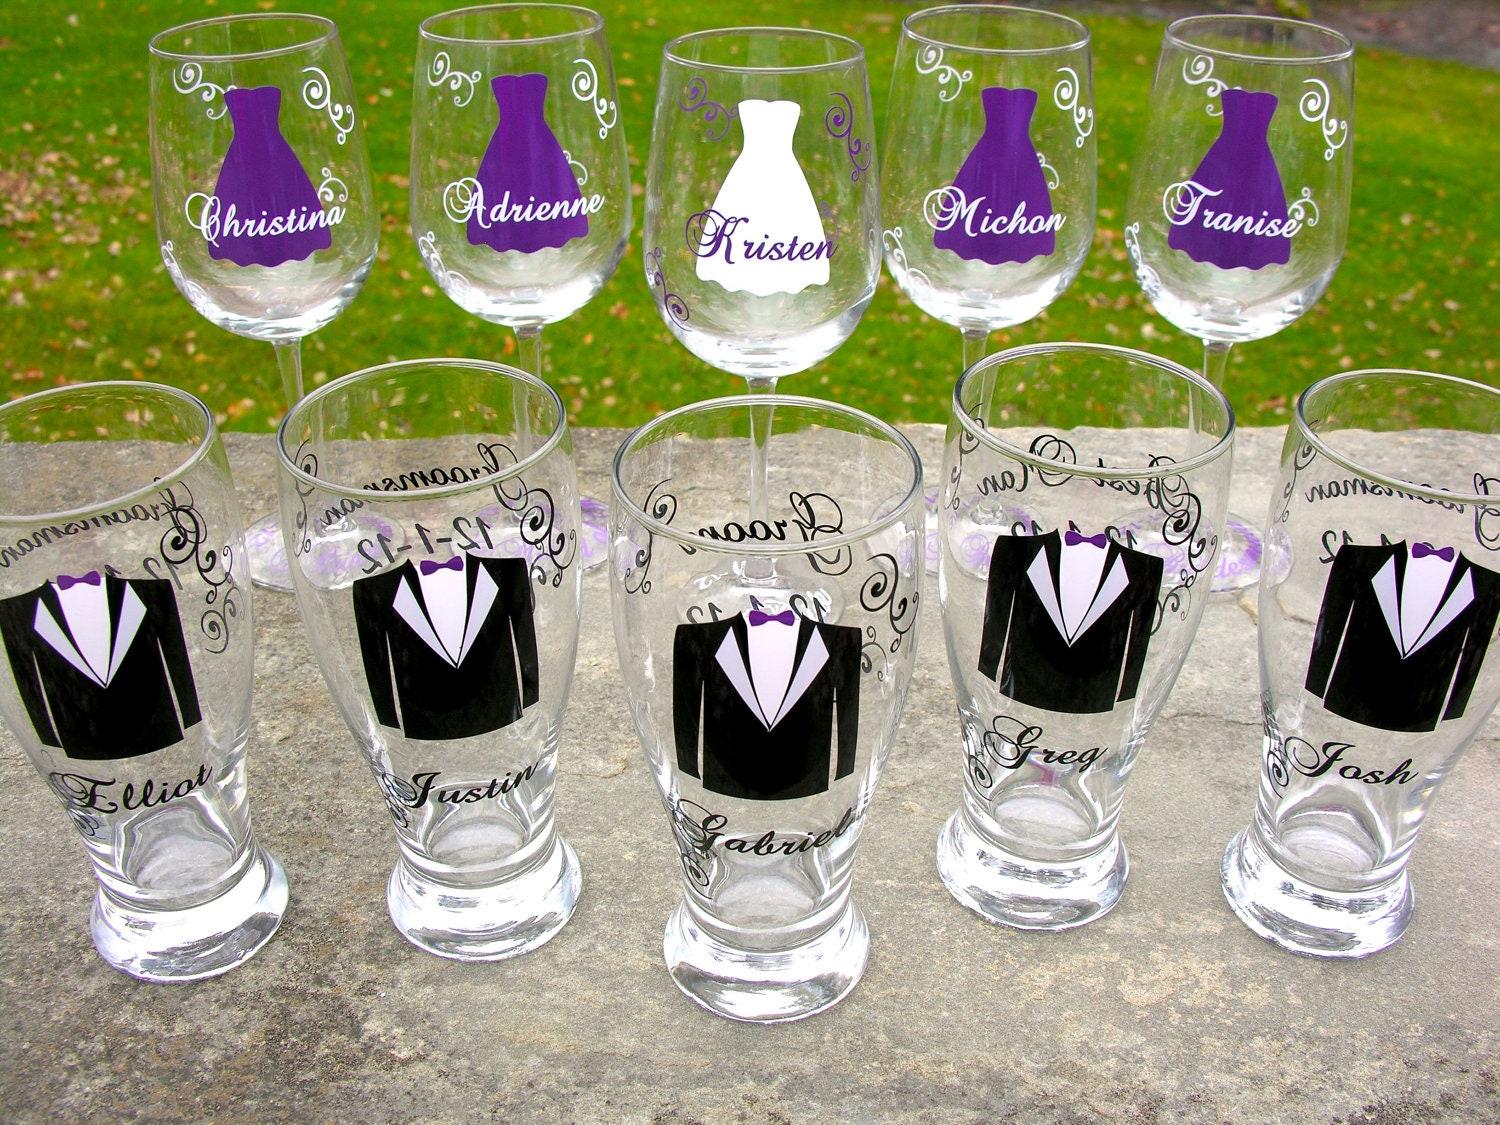 Wedding Gifts For Bridesmaids And Groomsmen : Wedding party glasses wine glasses and beer by WaterfallDesigns